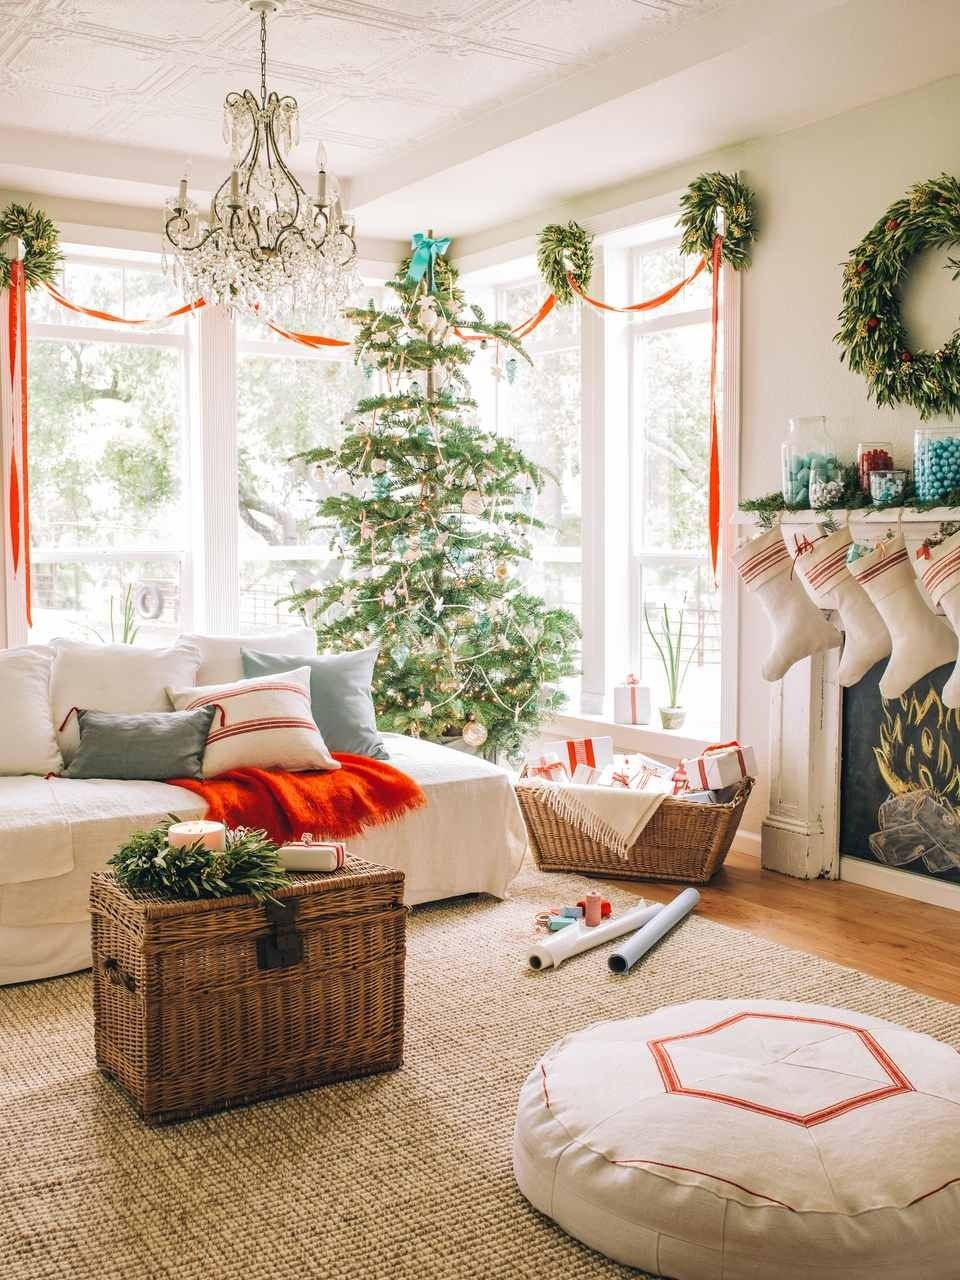 10 Stylish Christmas Living Room Decorating Ideas 15 beautiful ways to decorate the living room for christmas